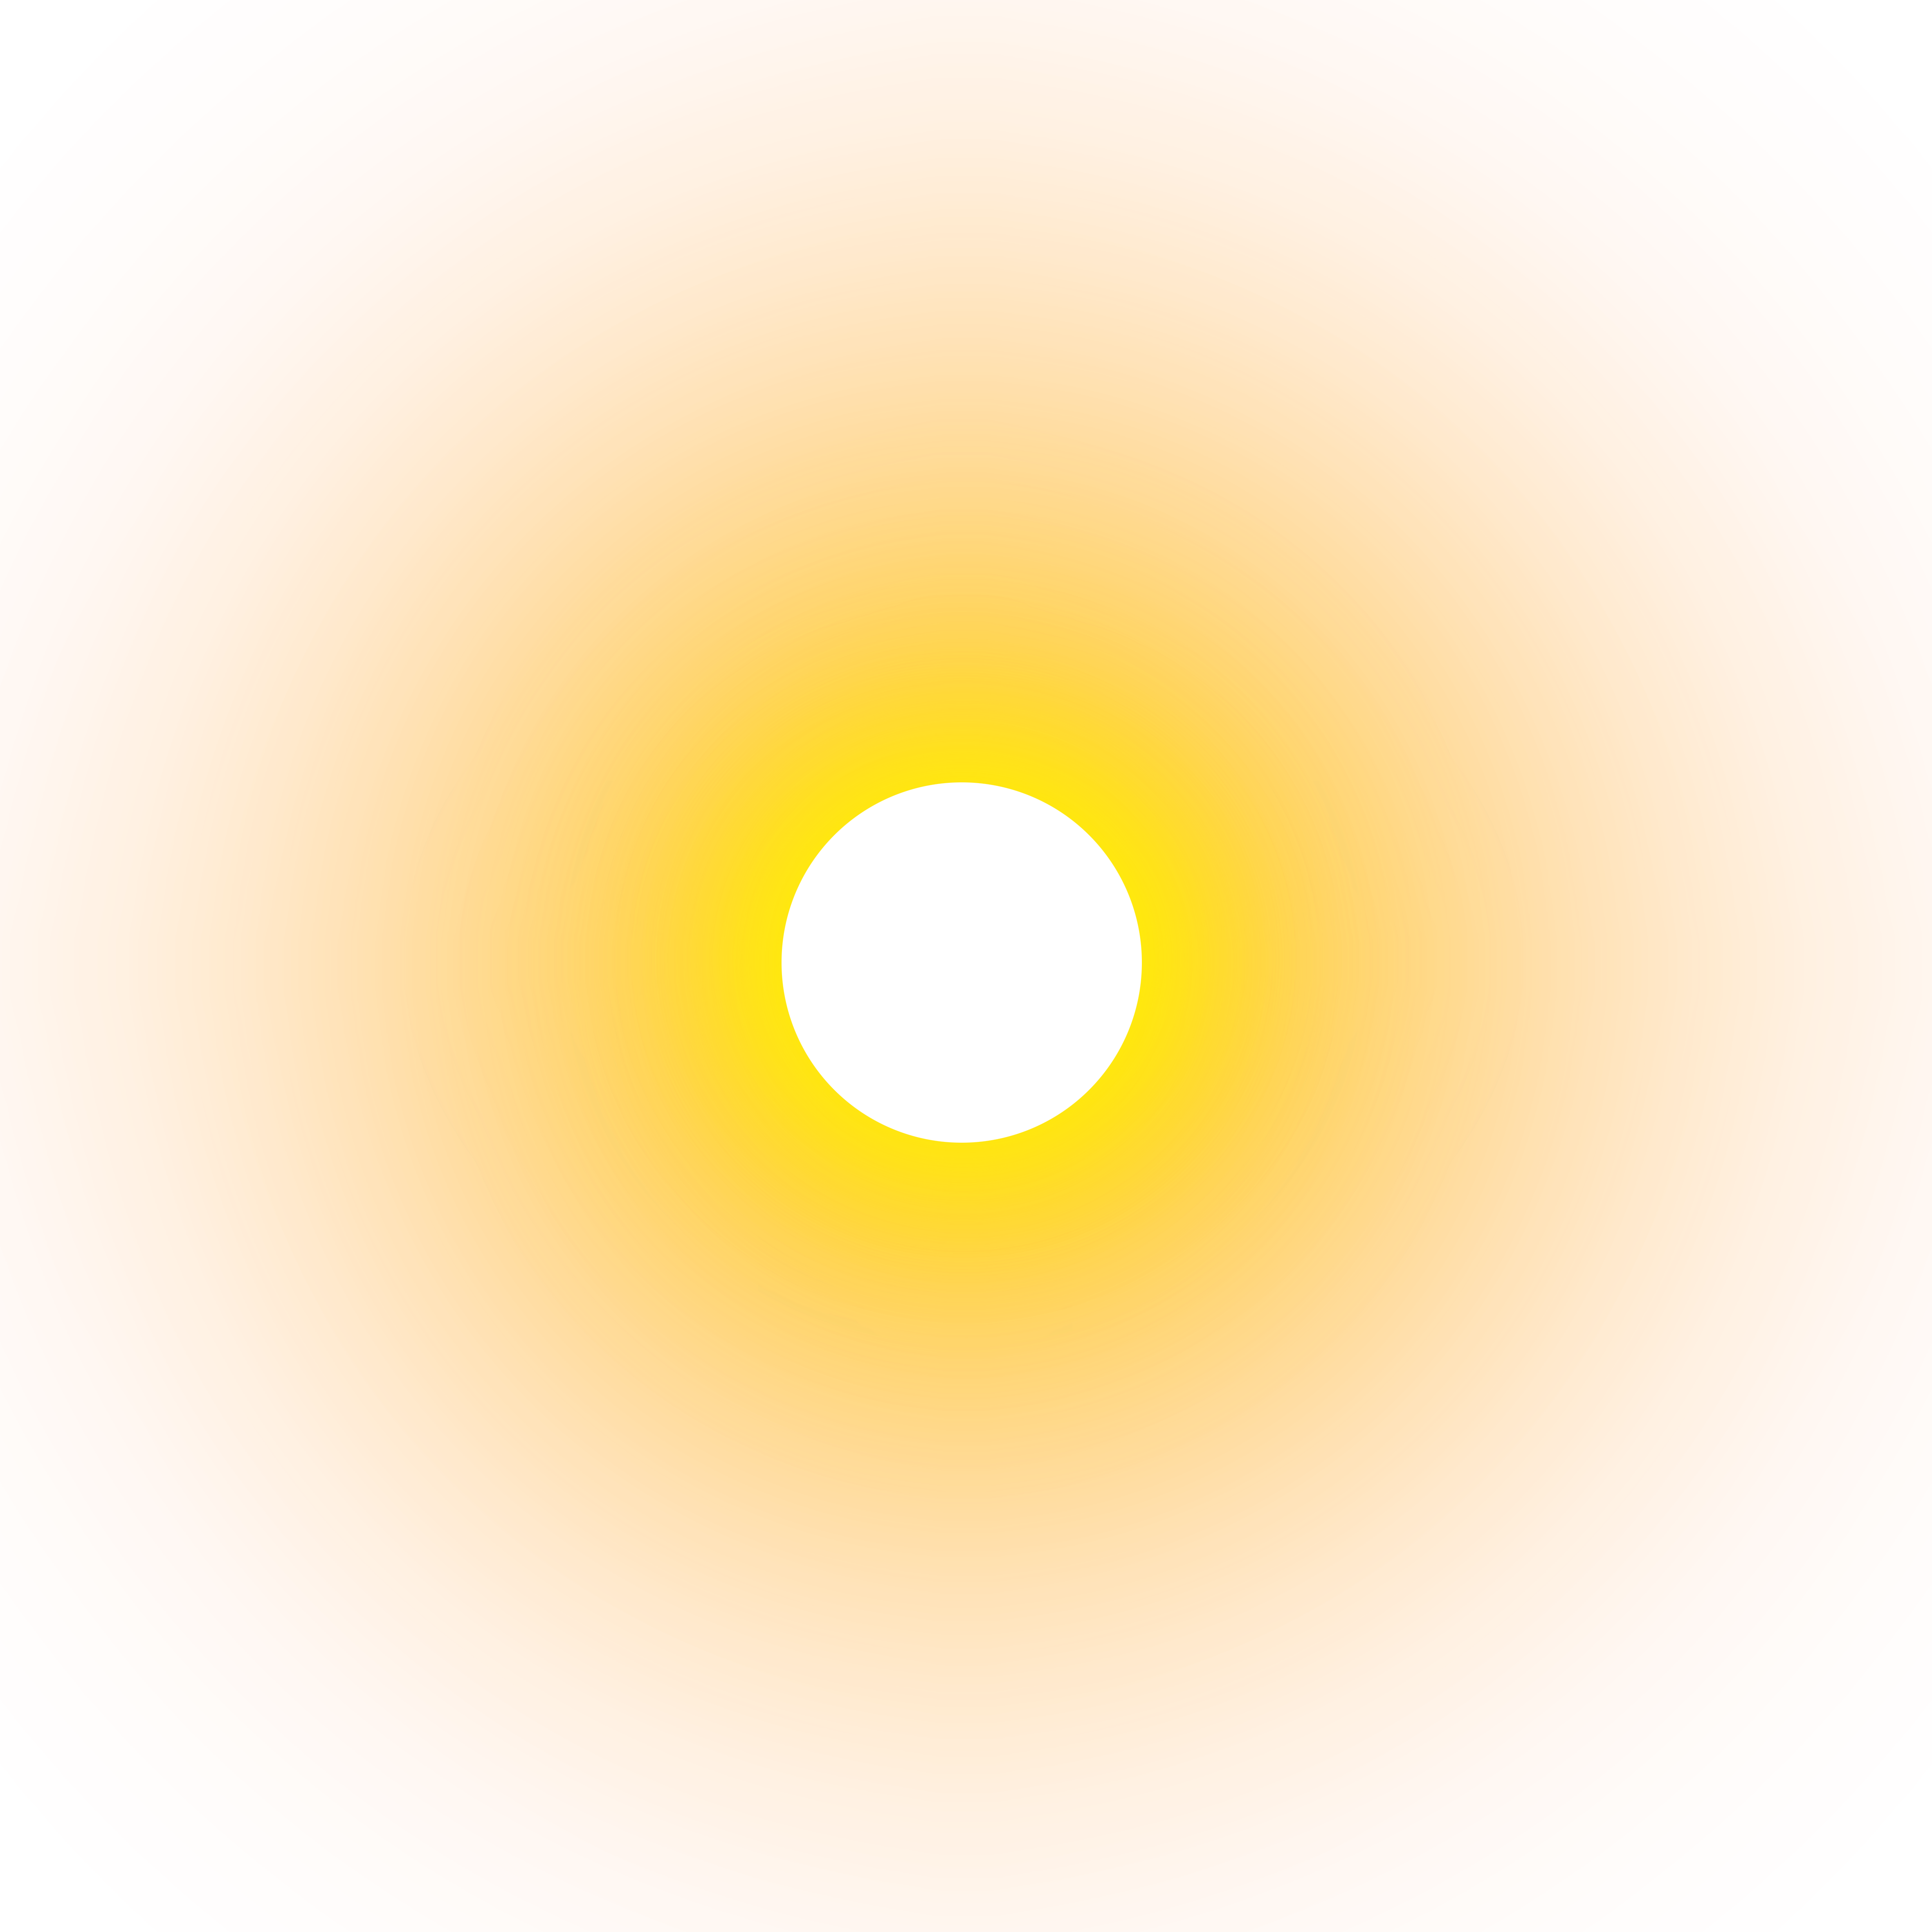 real sun PNG - Sun PNG Transparent Background